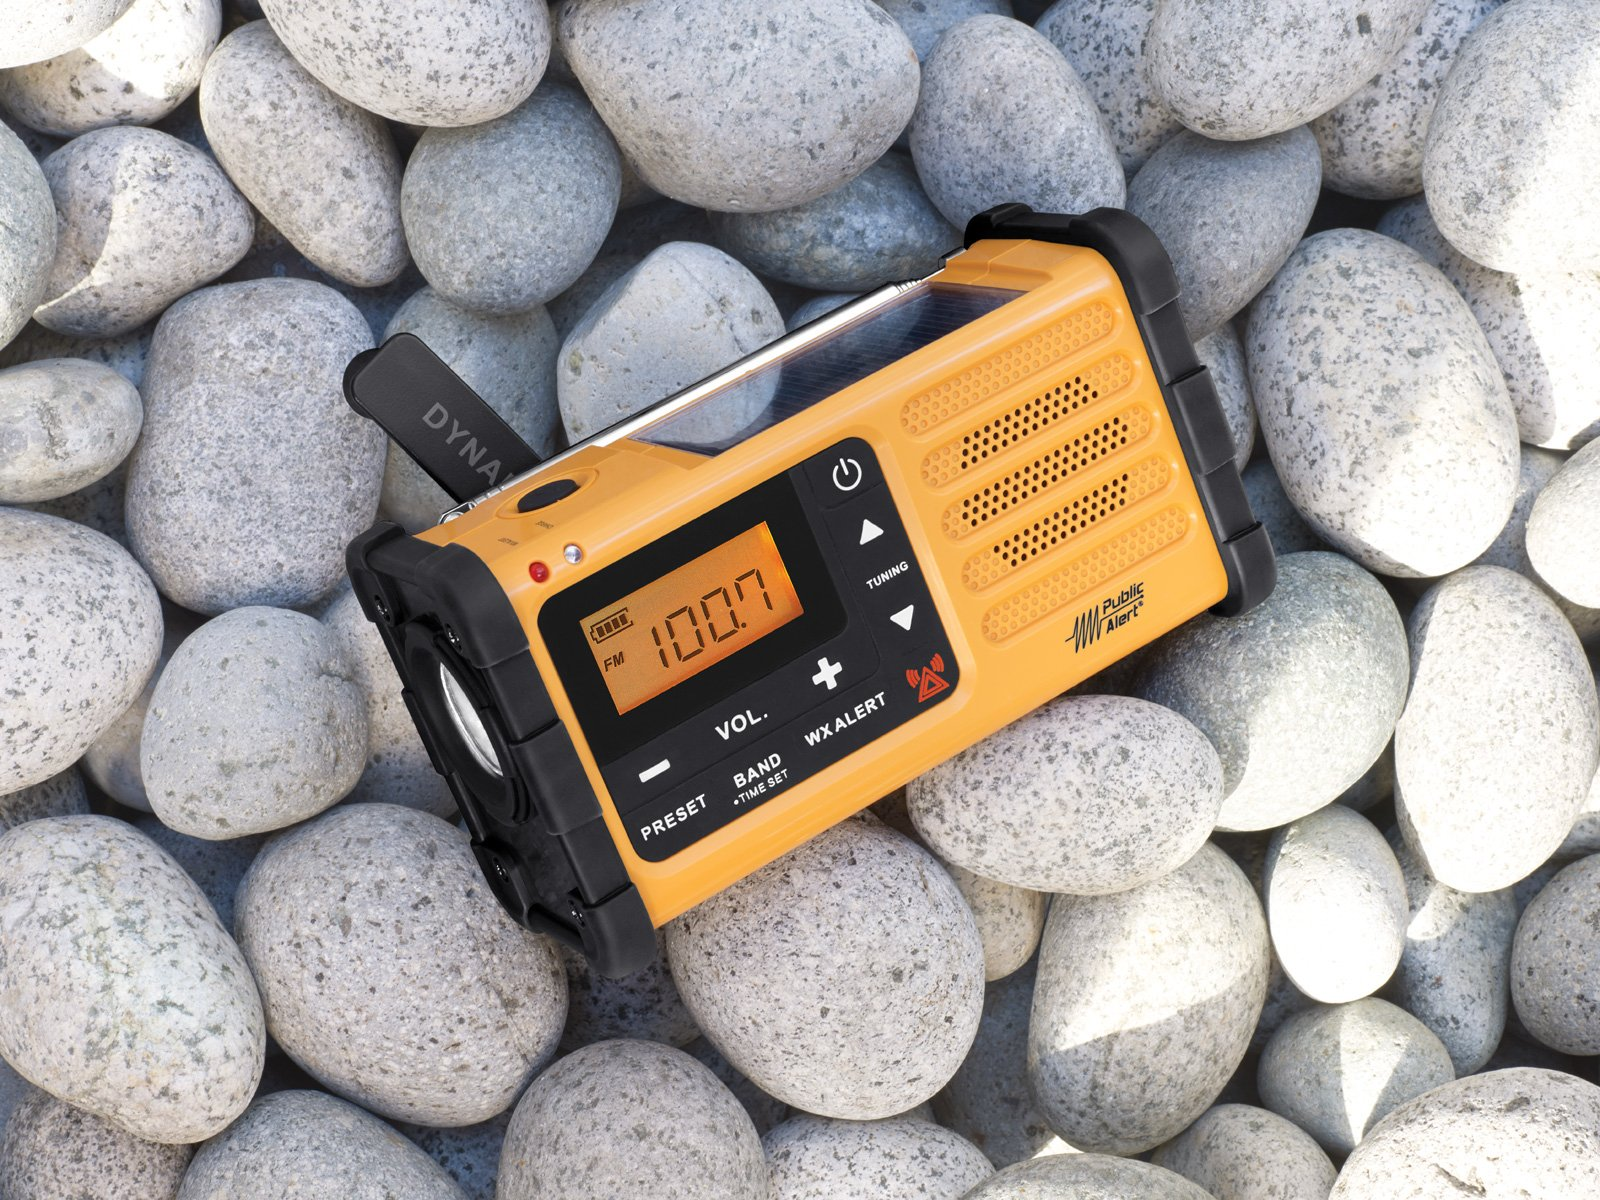 Sangean Portable Digital AM/FM Emergency Weather Alert Radio with Large Easy to Read Backlit LCD Display